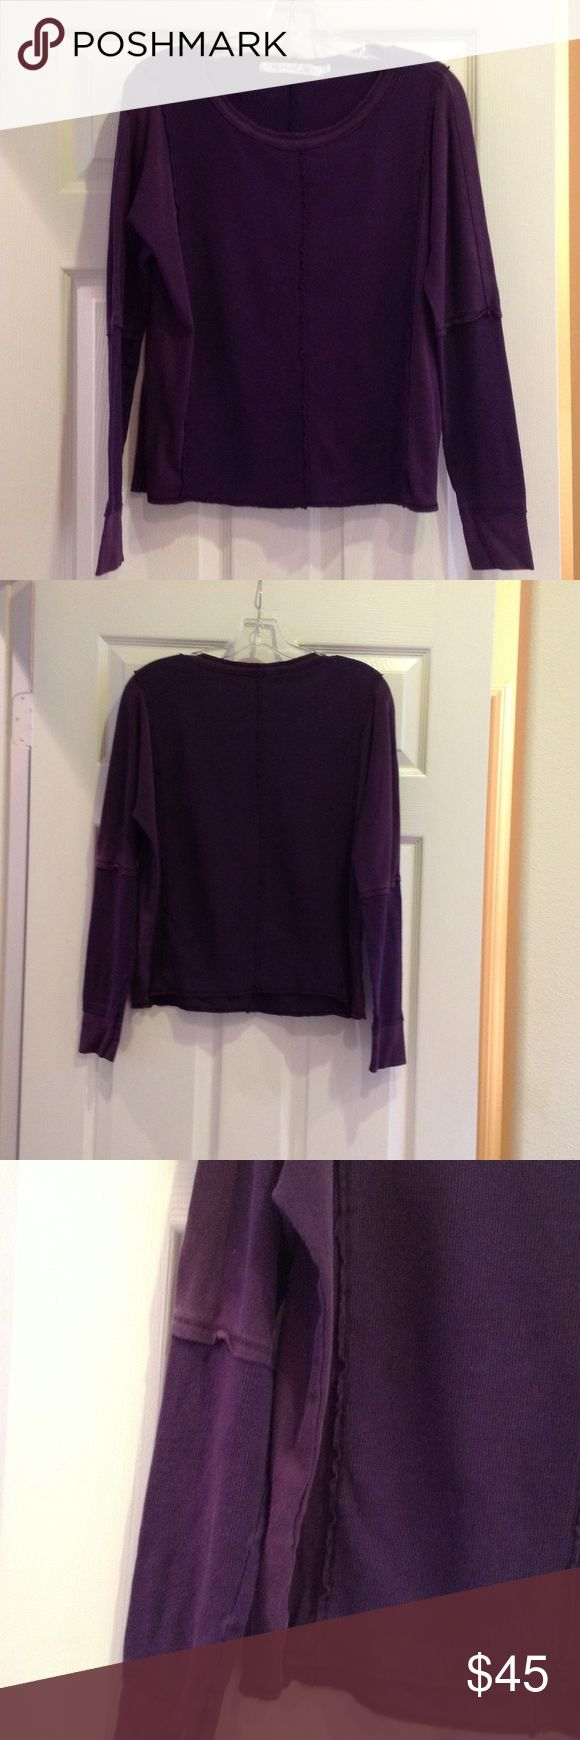 Michael Stars long-sleeved purple top. Size OS. Michael Stars women's,  long-sleeved, purple top. 47.5% Suprima; 47.5% Modal; 5% Spandex. Ribbing at neck and bottom of sleeves. OS fits most. Will fit size L. Michael Stars Tops Tees - Long Sleeve